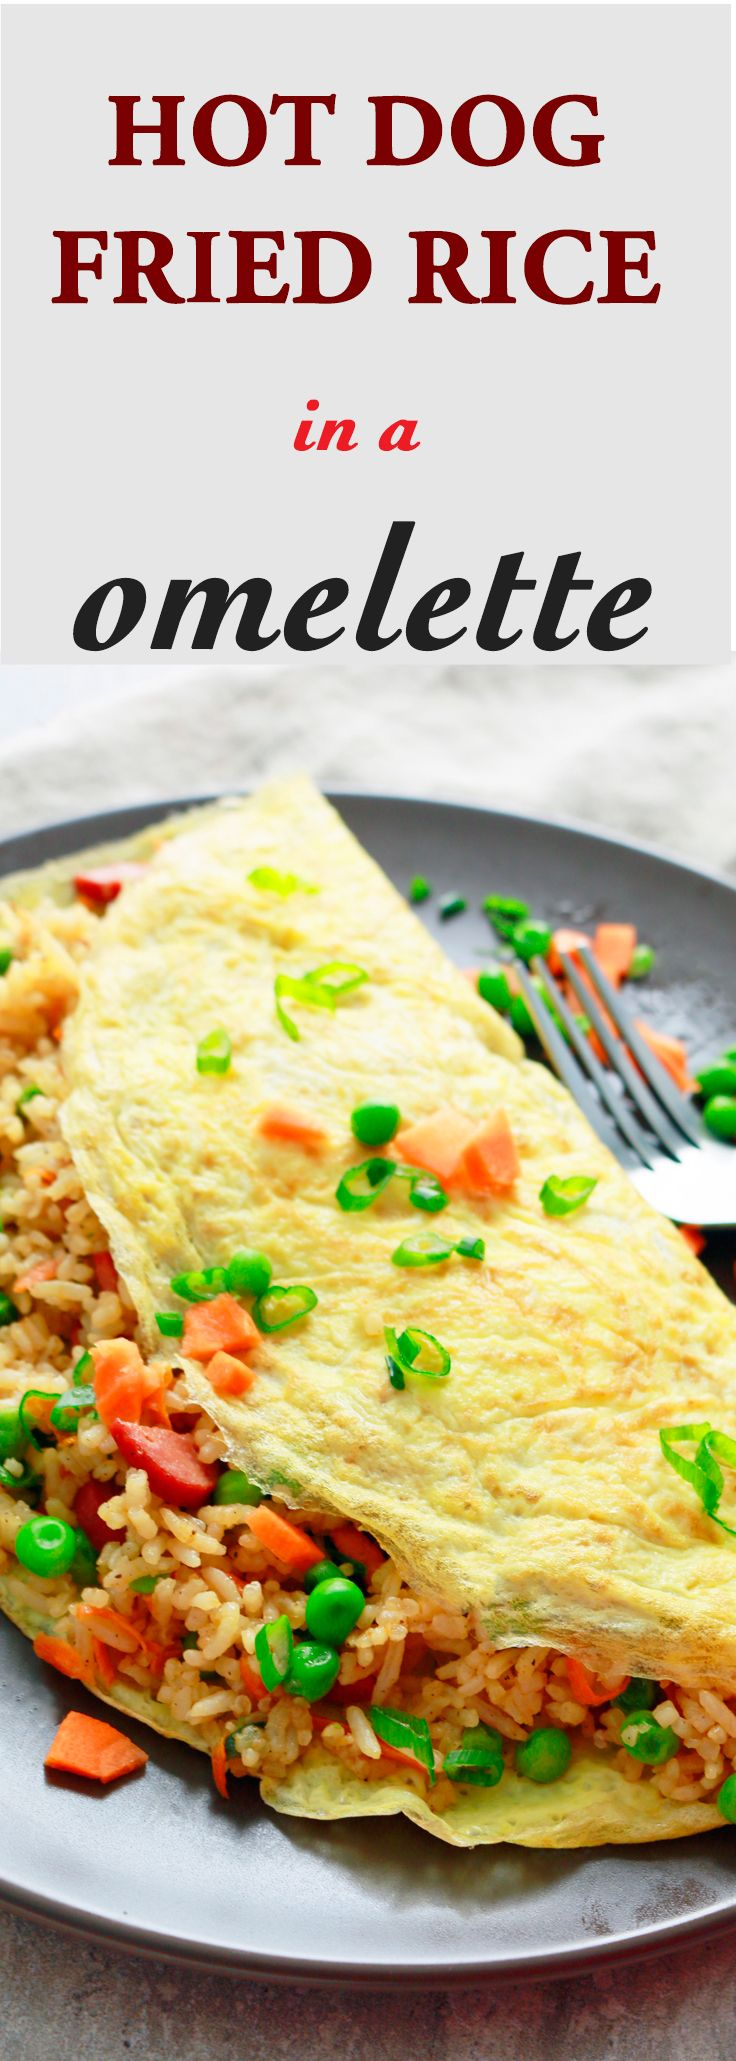 easy fried rice| fried rice recipe |chicken fried rice | shrimp fried rice | hot dog fried rice | fried rice with egg | spam fried rice | chinese fried rice | hot dog recipes | hot dog ideas